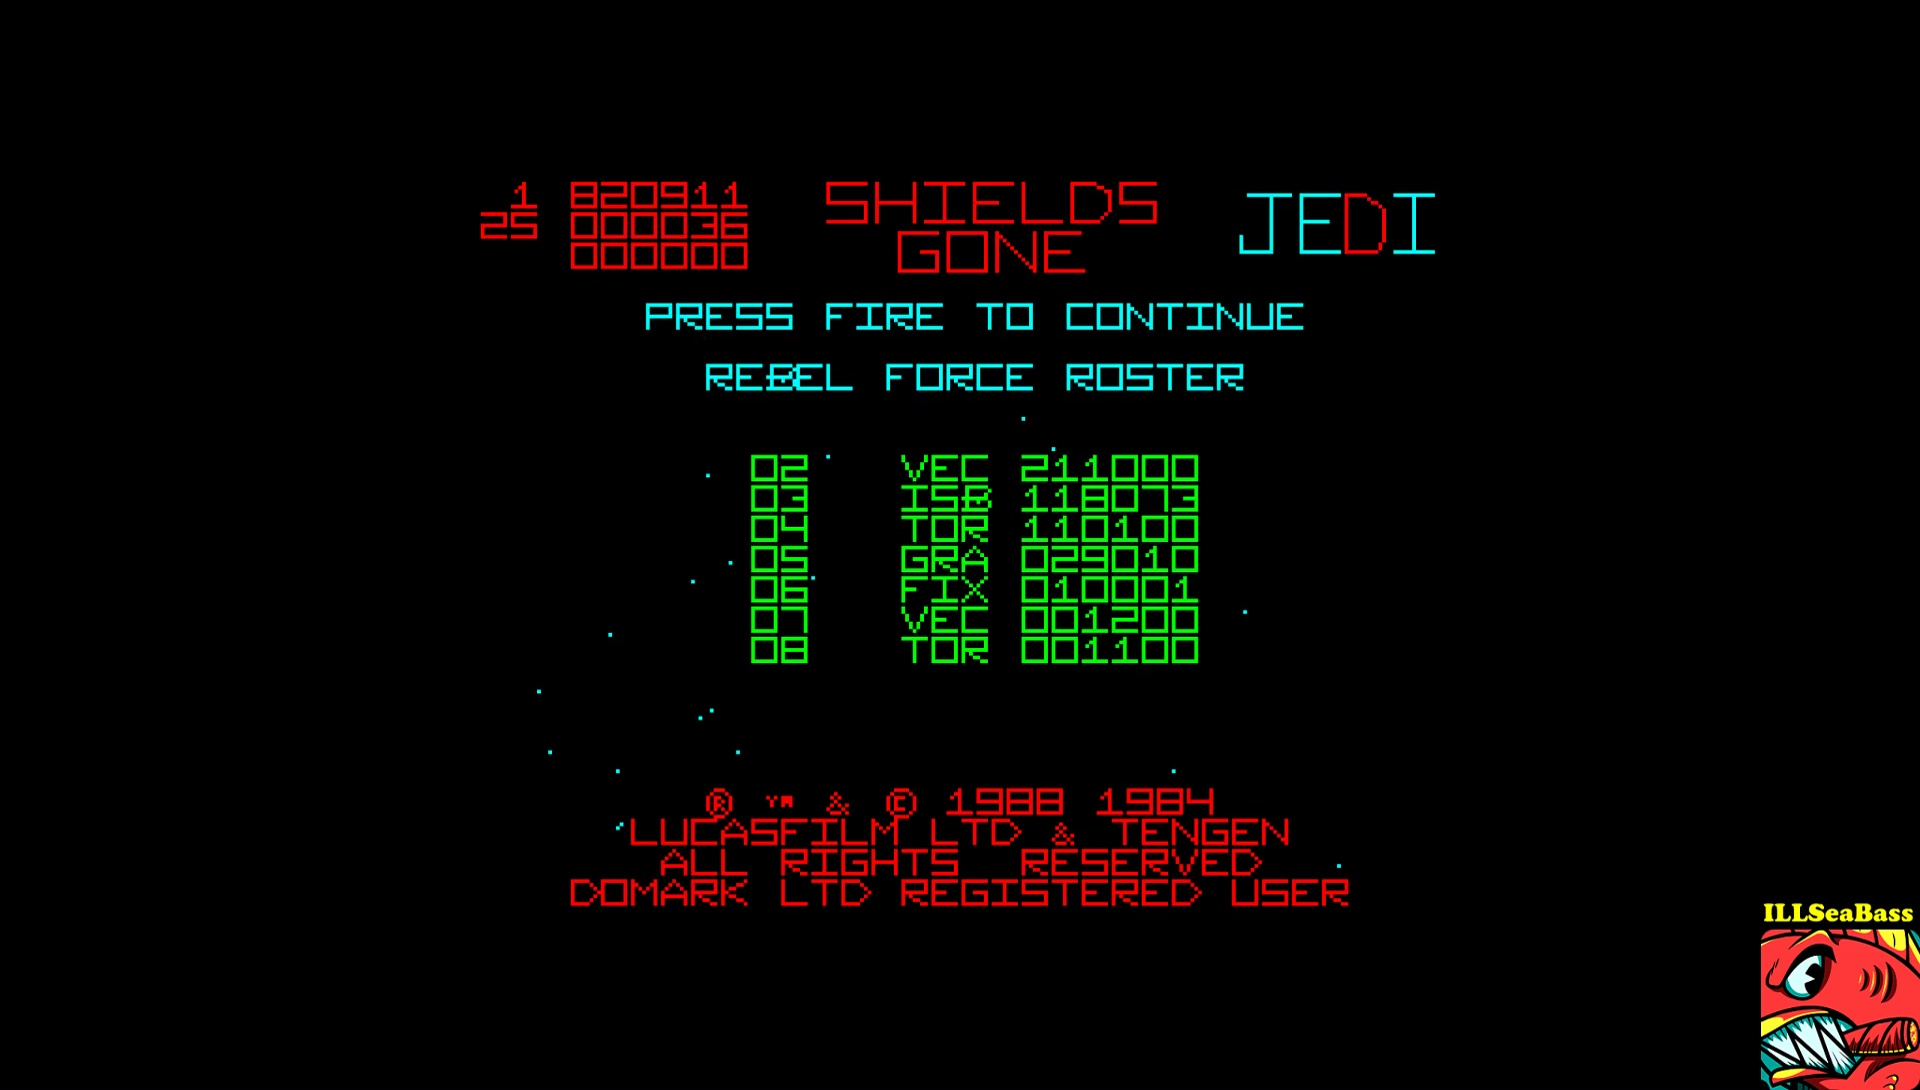 ILLSeaBass: The Empire Strikes Back [Wave 2 - Medium] (Amstrad CPC Emulated) 118,073 points on 2017-02-23 23:51:34